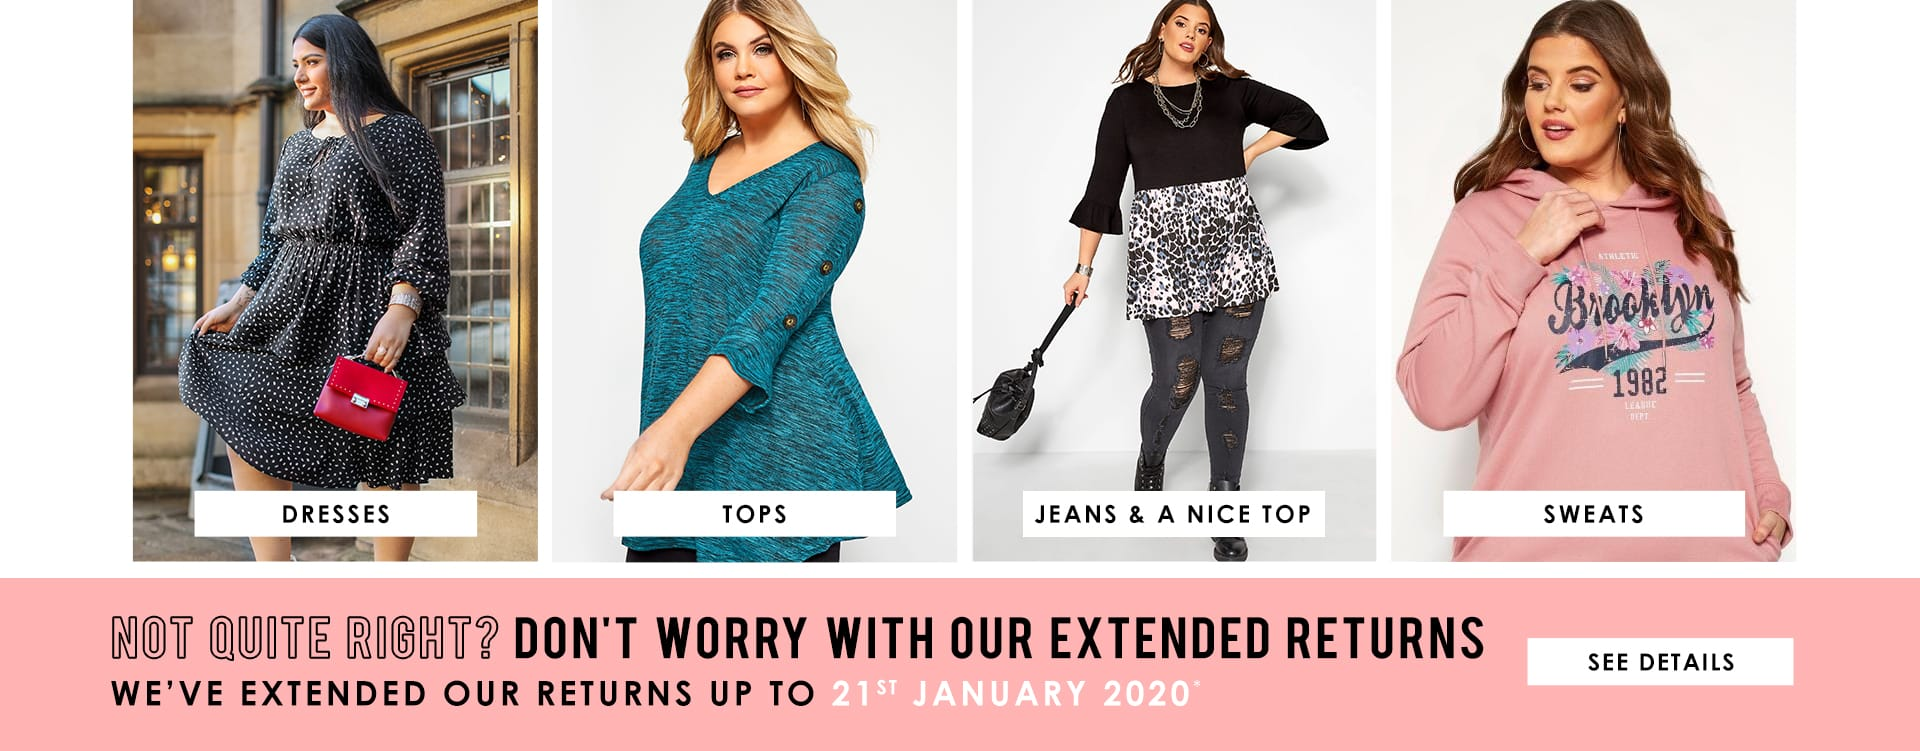 Dresses - New In - Tops